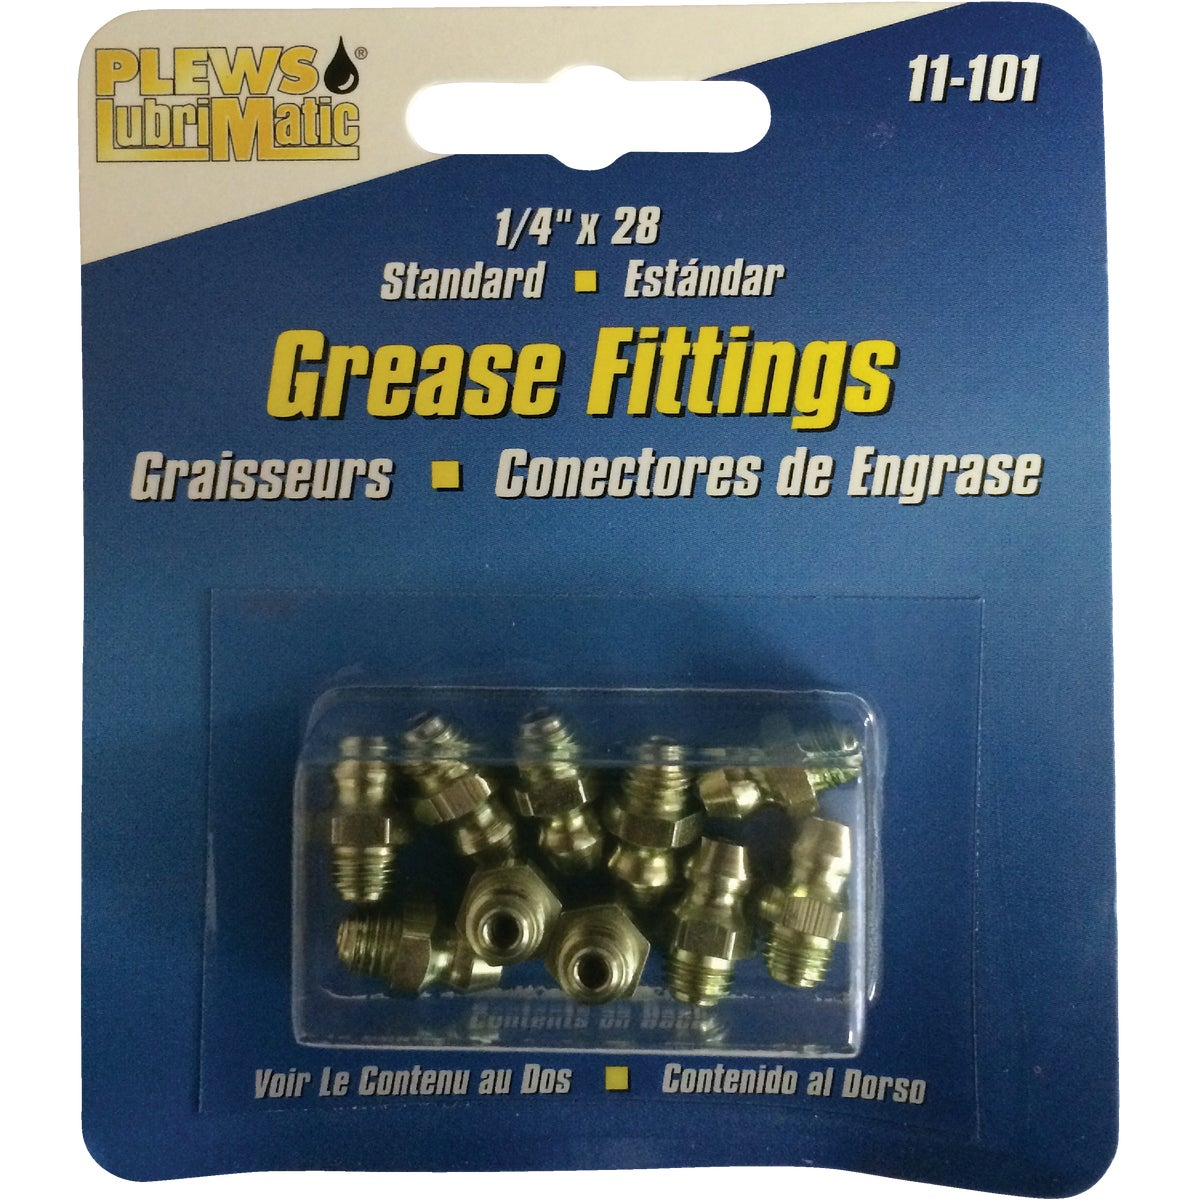 Plews LubriMatic Grease Fitting, 11-101